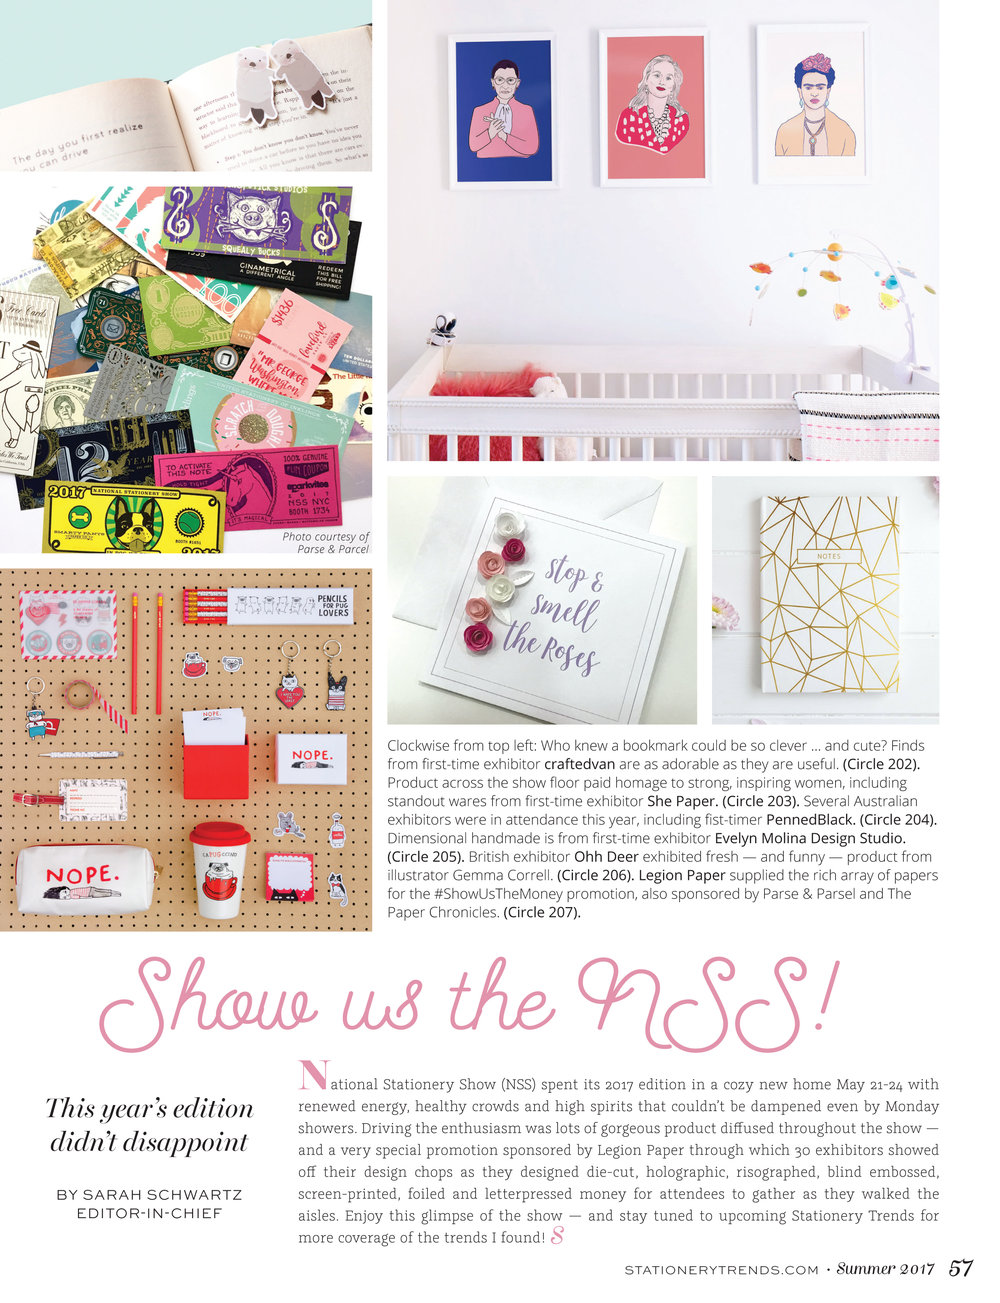 legion paper show us the money featured in the stationery